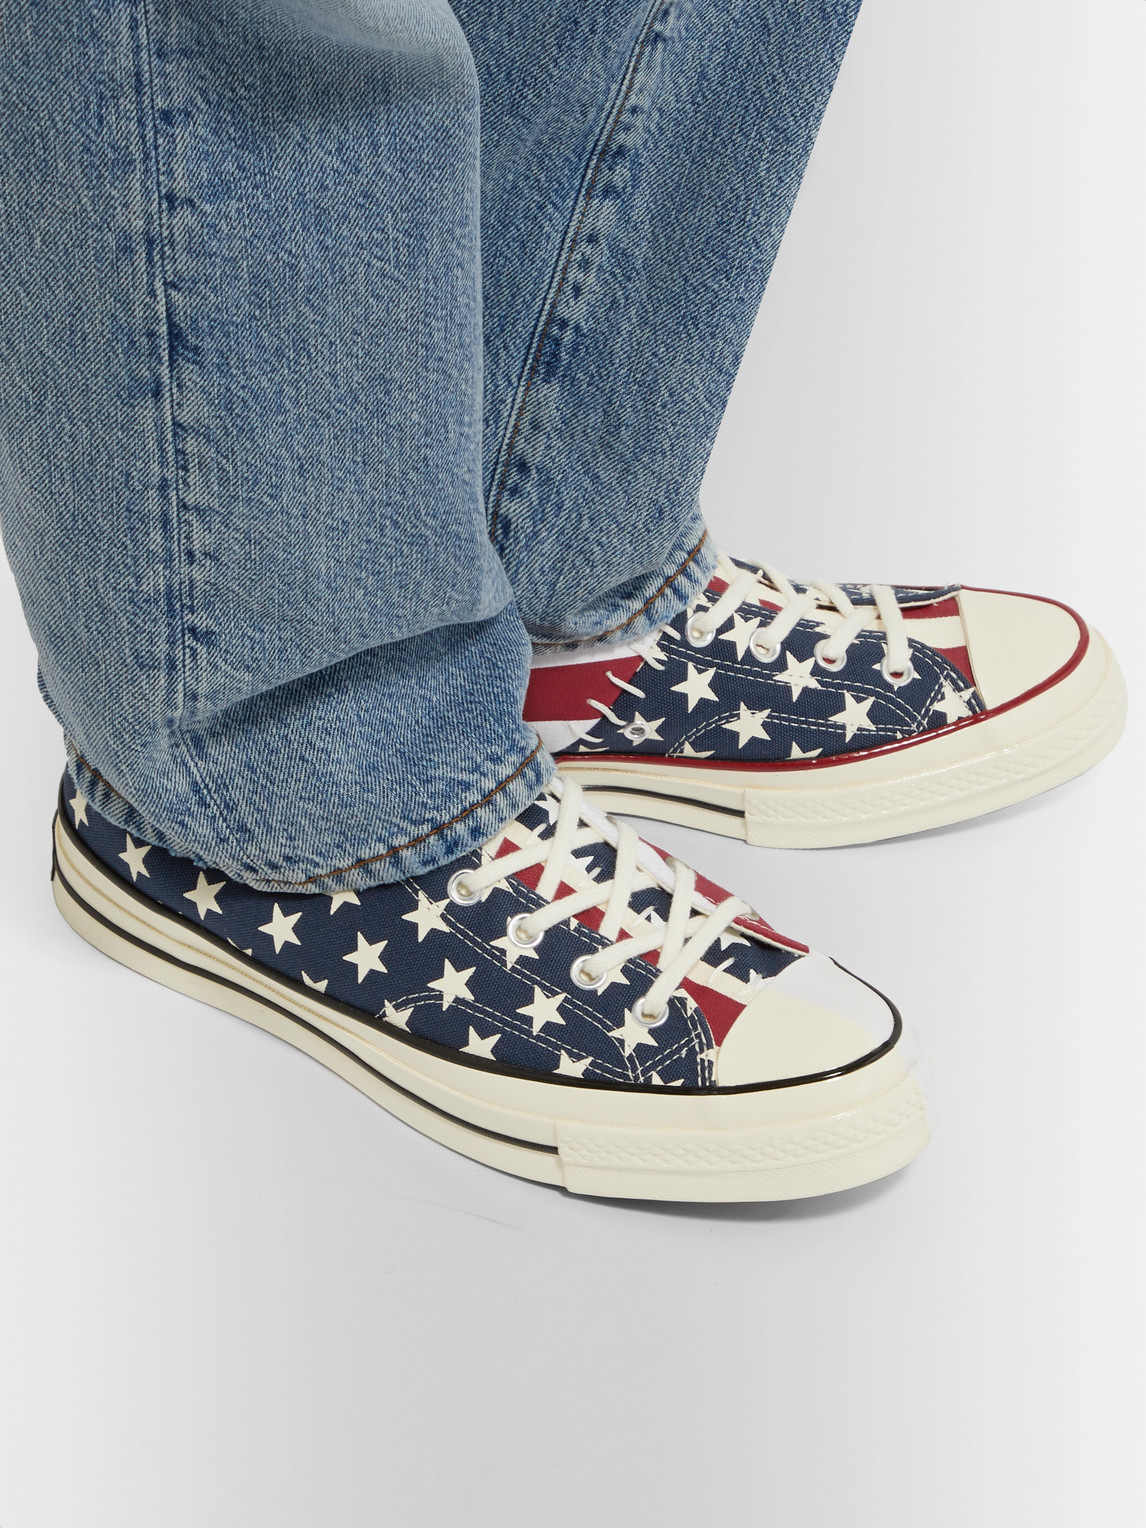 Converse Sneakers CHUCK 70 ARCHIVE RESTRUCTURED PRINTED ORGANIC CANVAS HIGH-TOP SNEAKERS